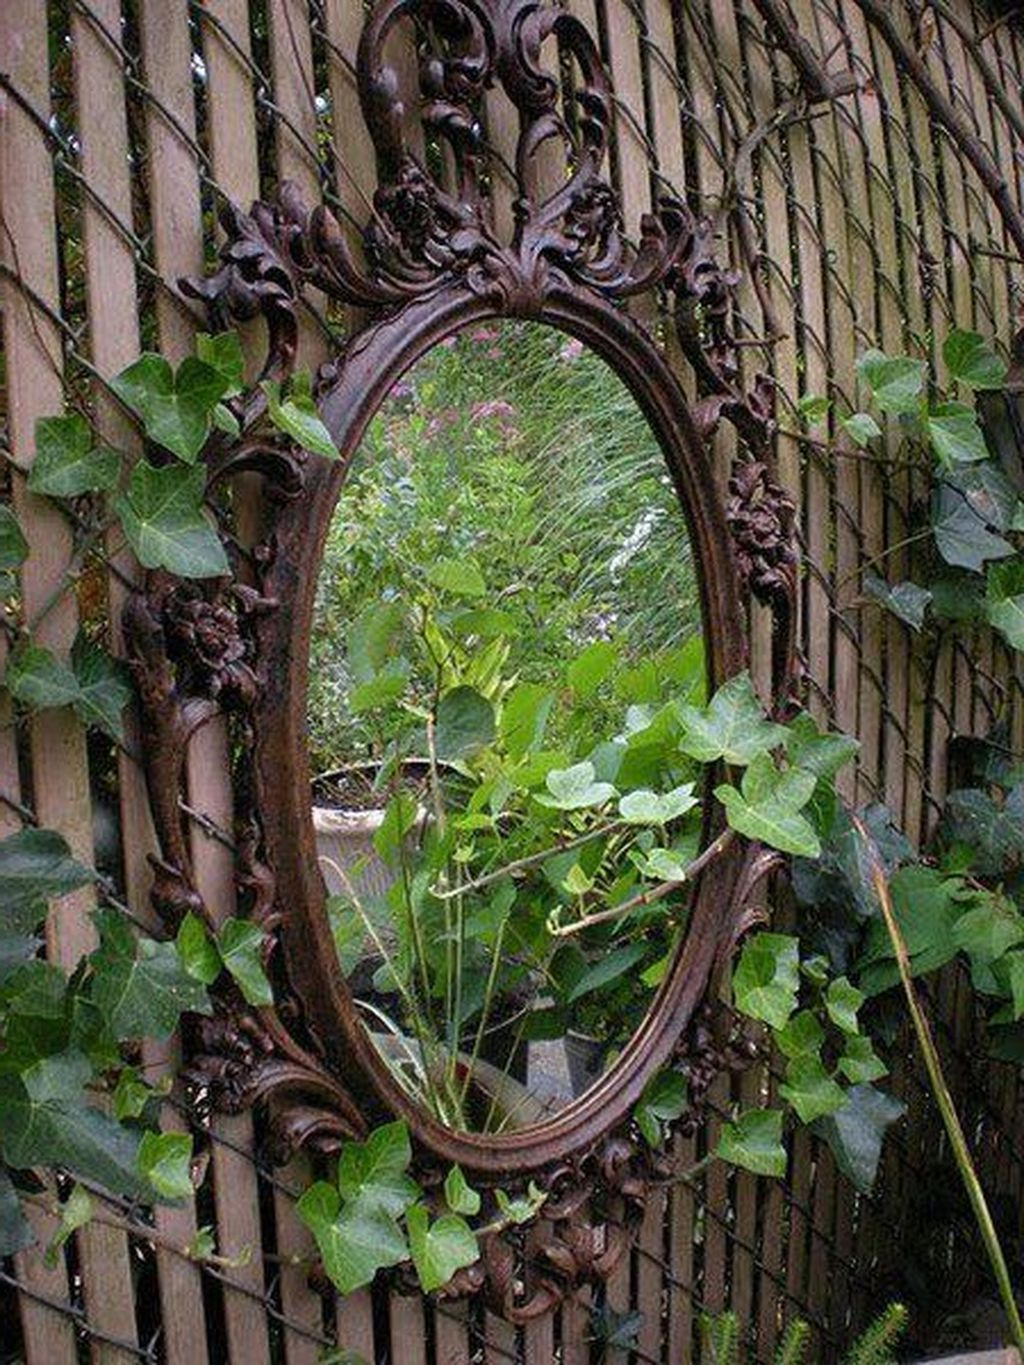 Preferred Awesome 20+ Magnificient Outdoor Garden Wall Mirrors Ideas For Garden Wall Mirrors (View 11 of 20)